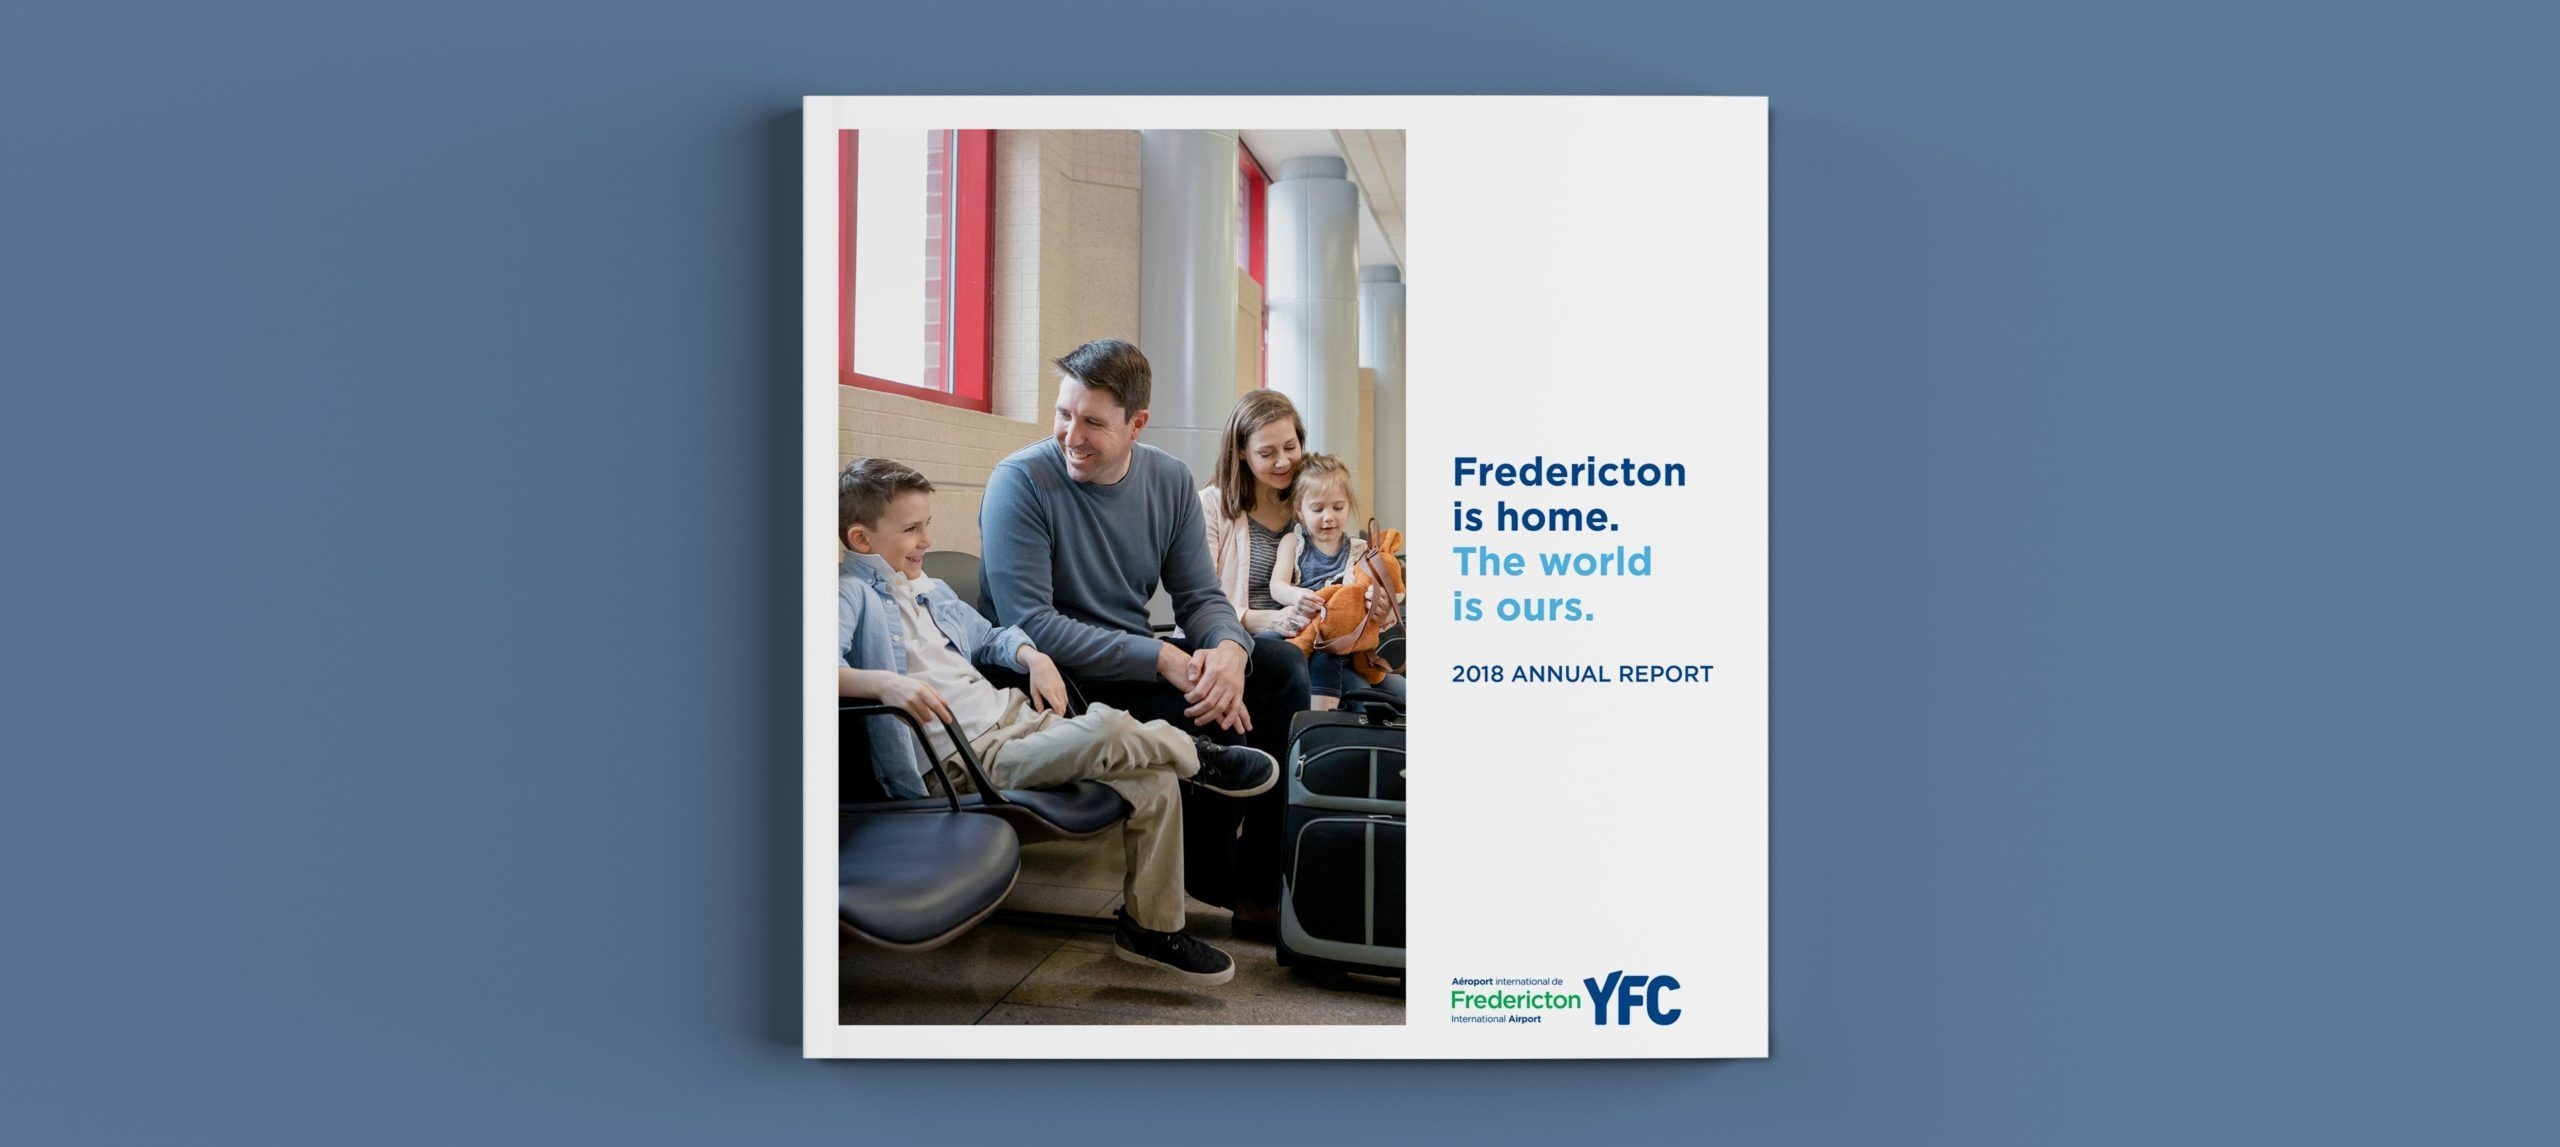 YFC Fredericton Airport Booklet